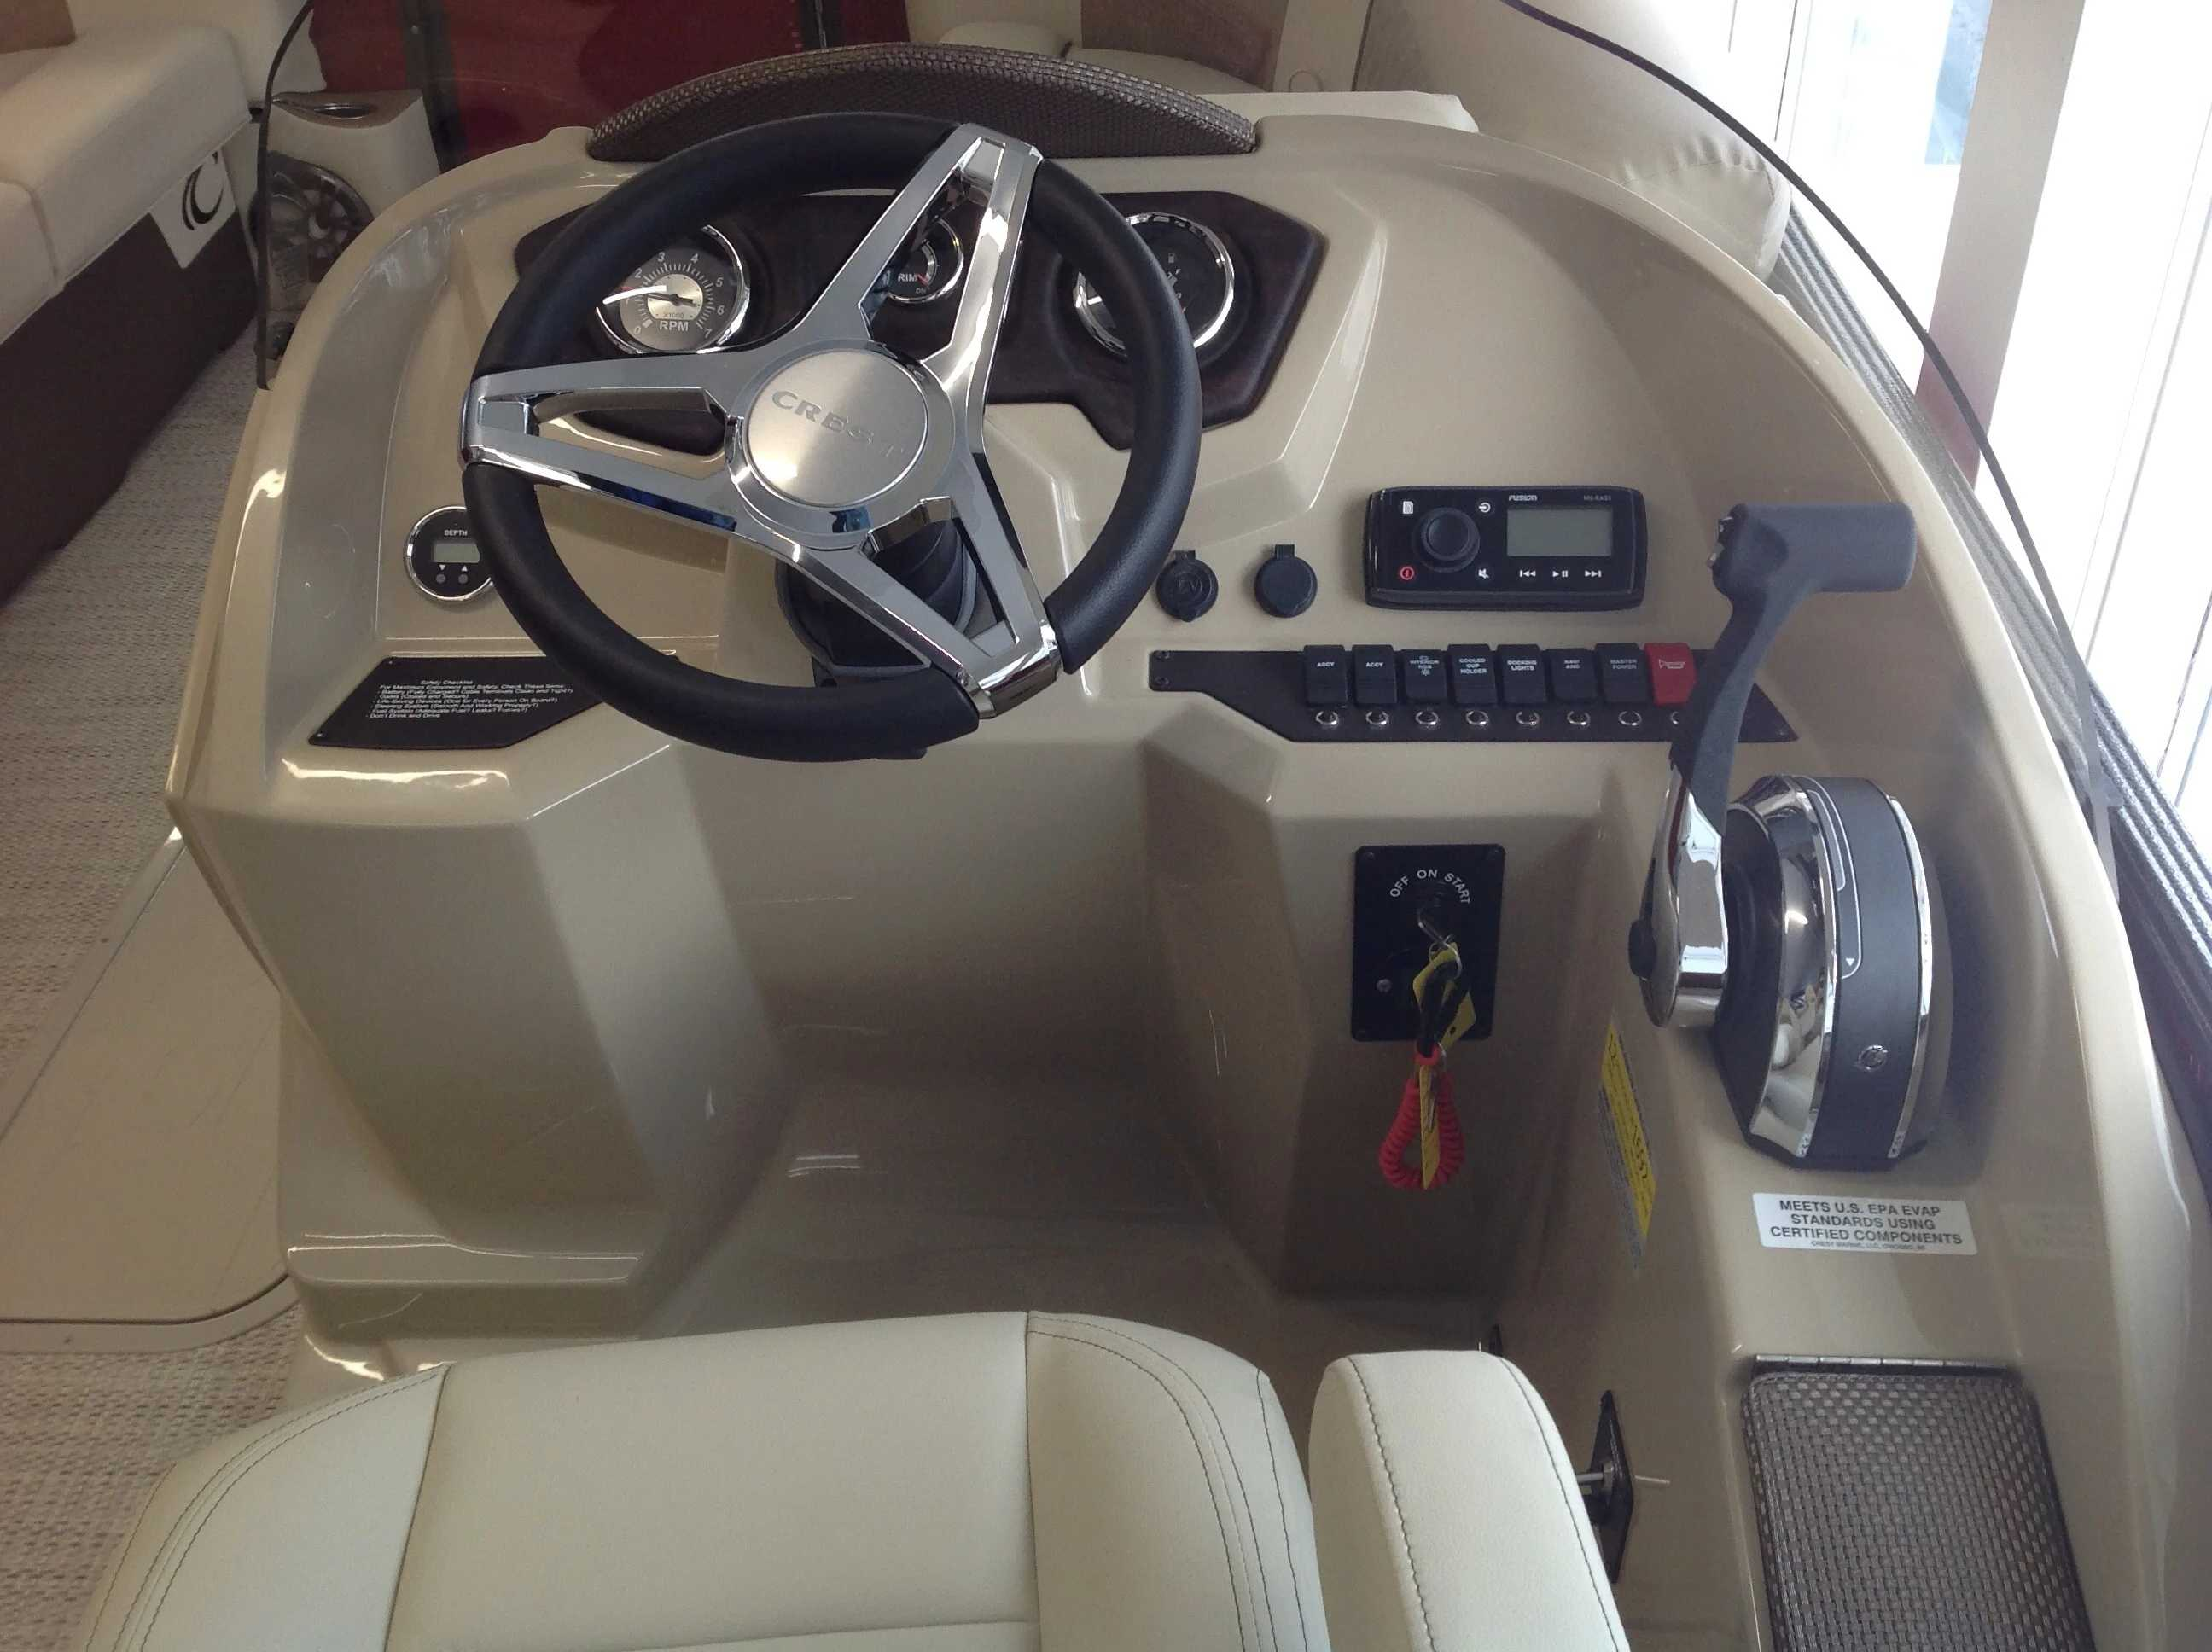 2021 Crest boat for sale, model of the boat is Cl Dlx 220slc & Image # 9 of 15